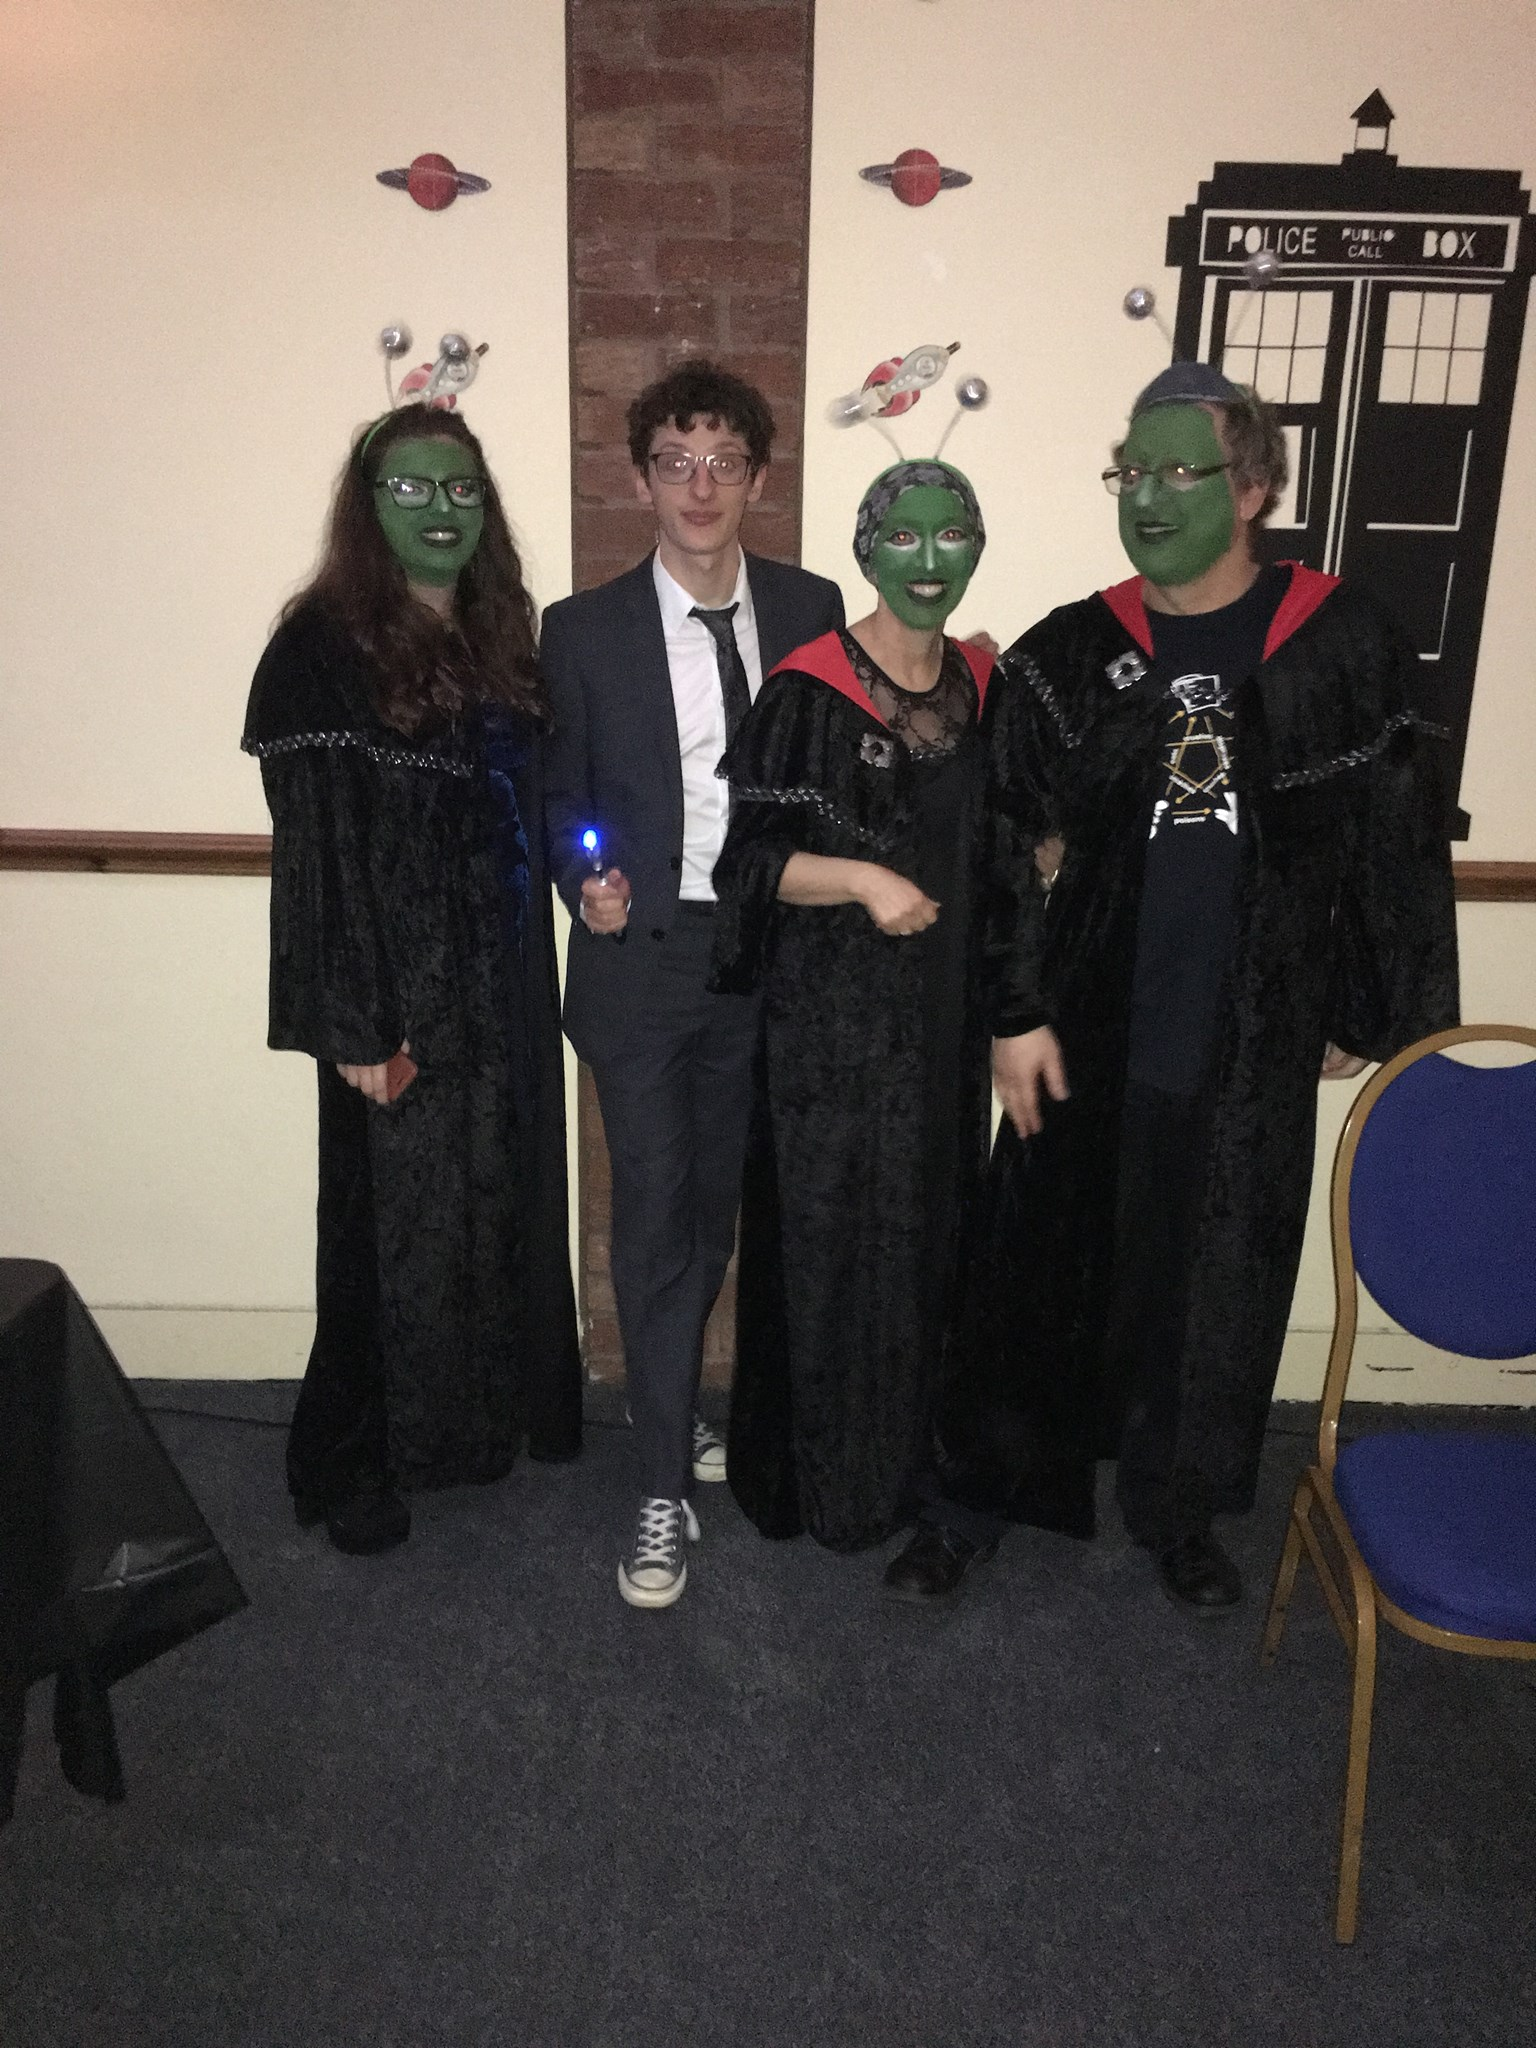 Purim party Yeshurun 2016 - Dr Who and 3 aliens